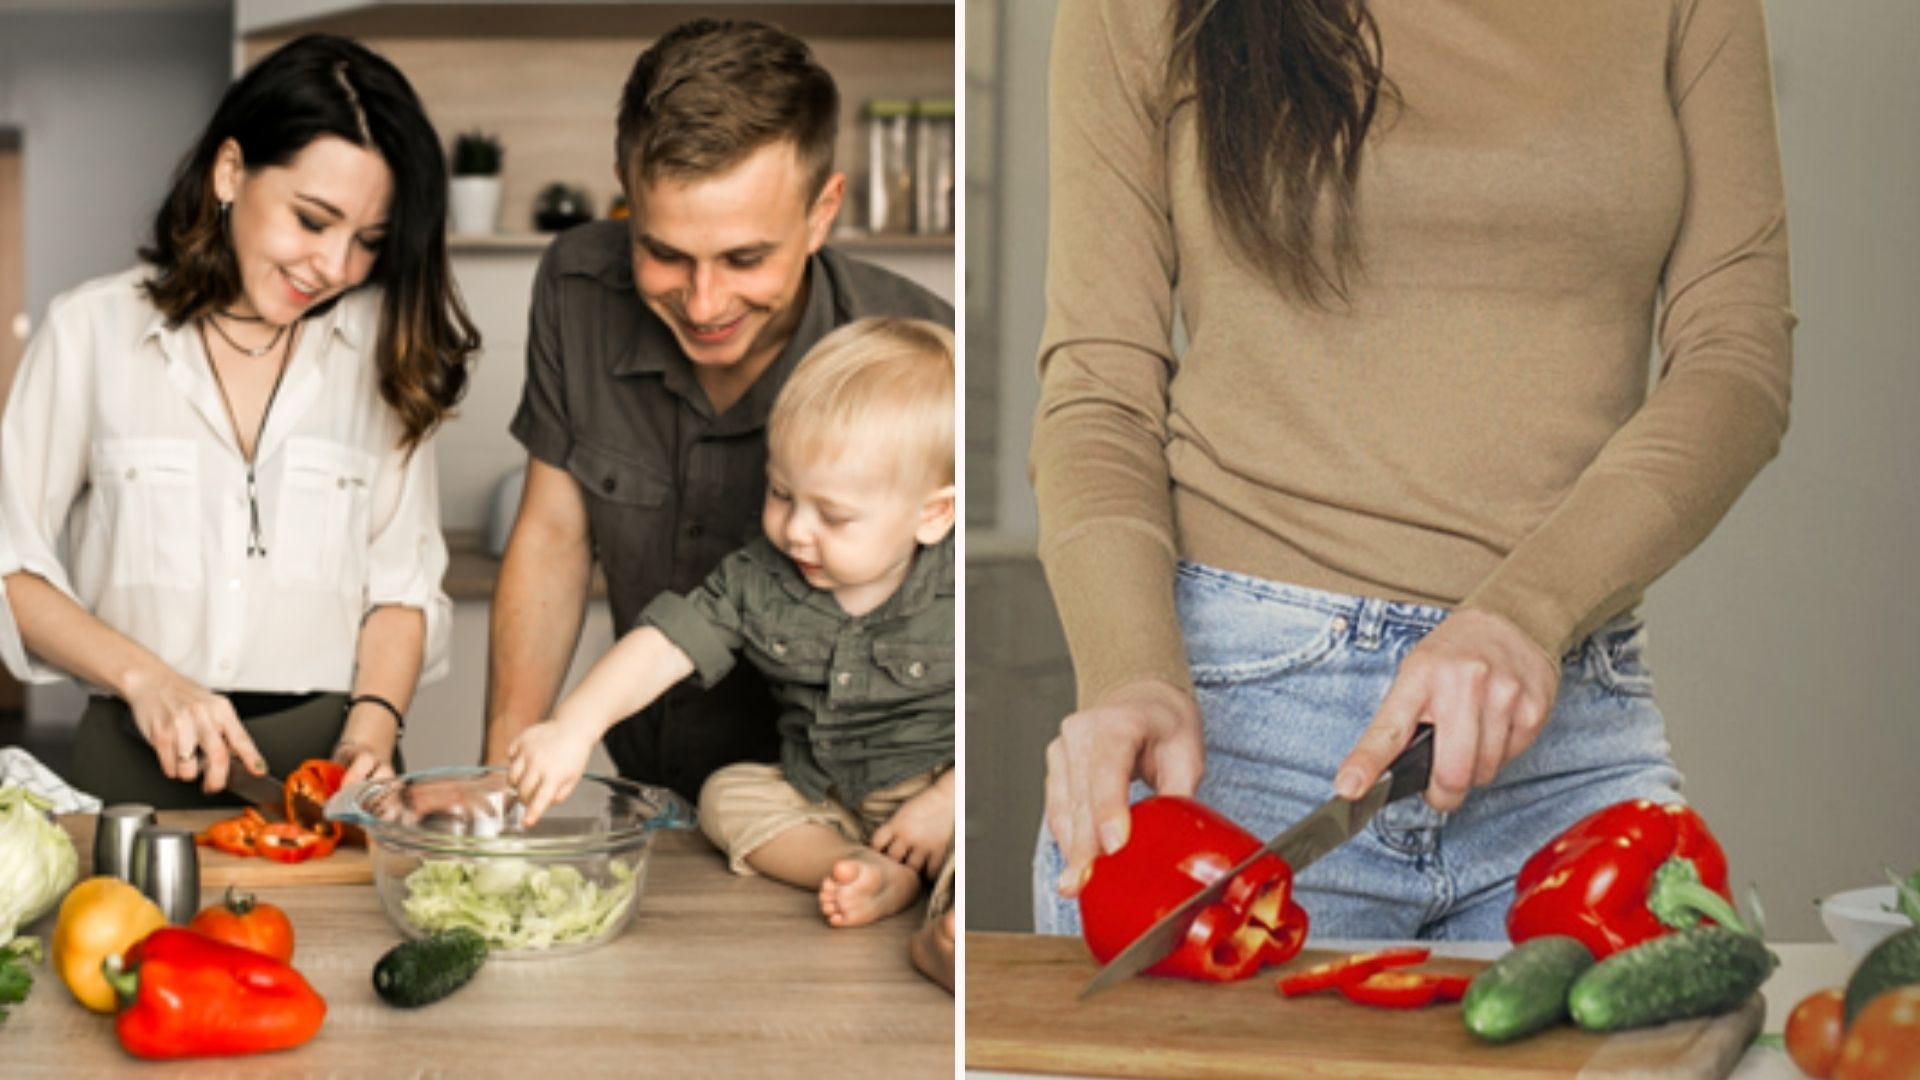 Two images: the left image is of family cooking together and the right image is of a woman cutting red bell pepper on a Greener chef cutting board.